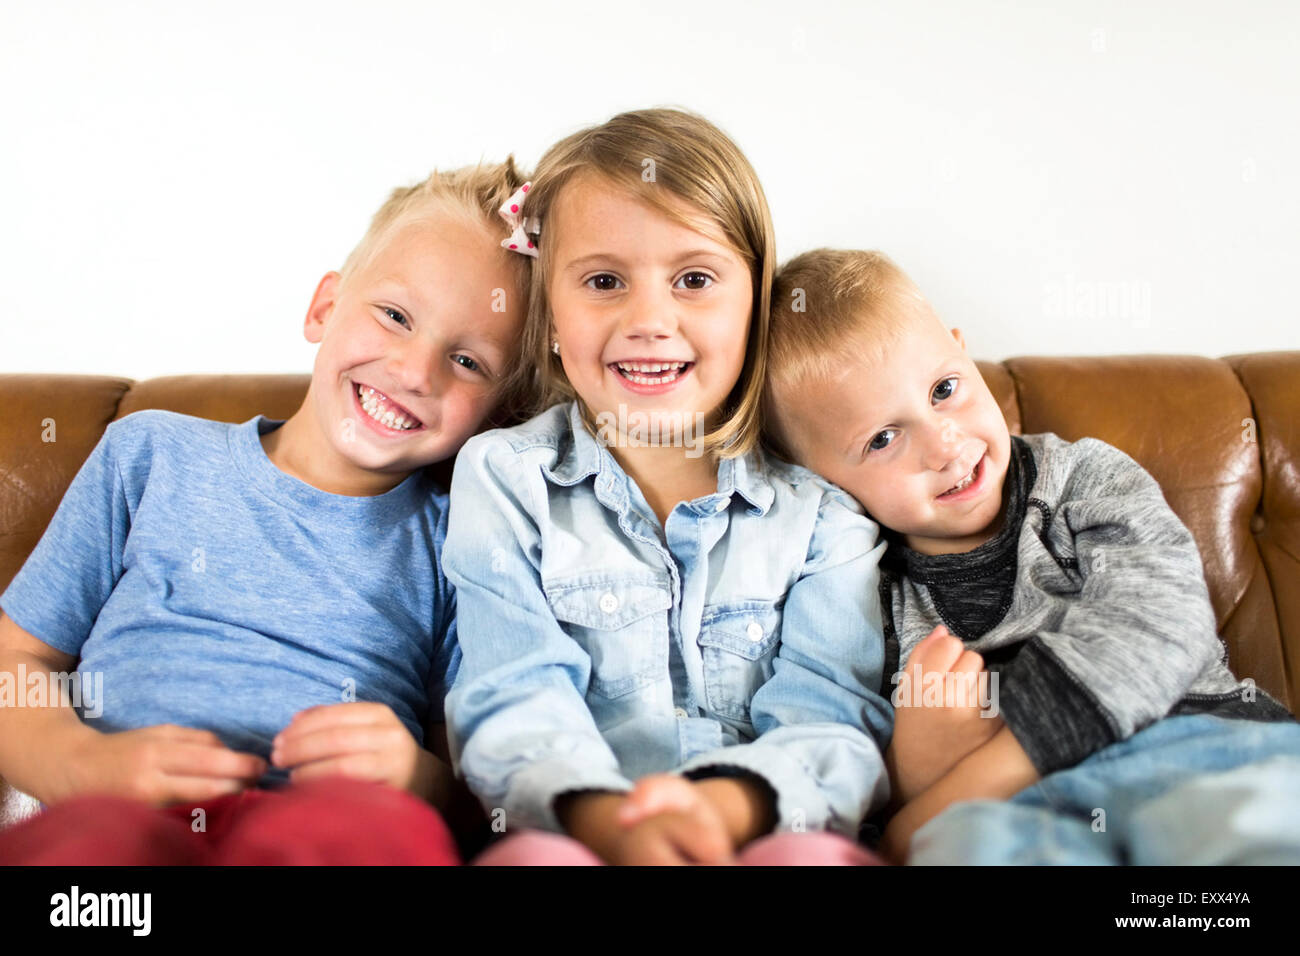 Smiling Children (2-3, 4-5) sitting on sofa Photo Stock